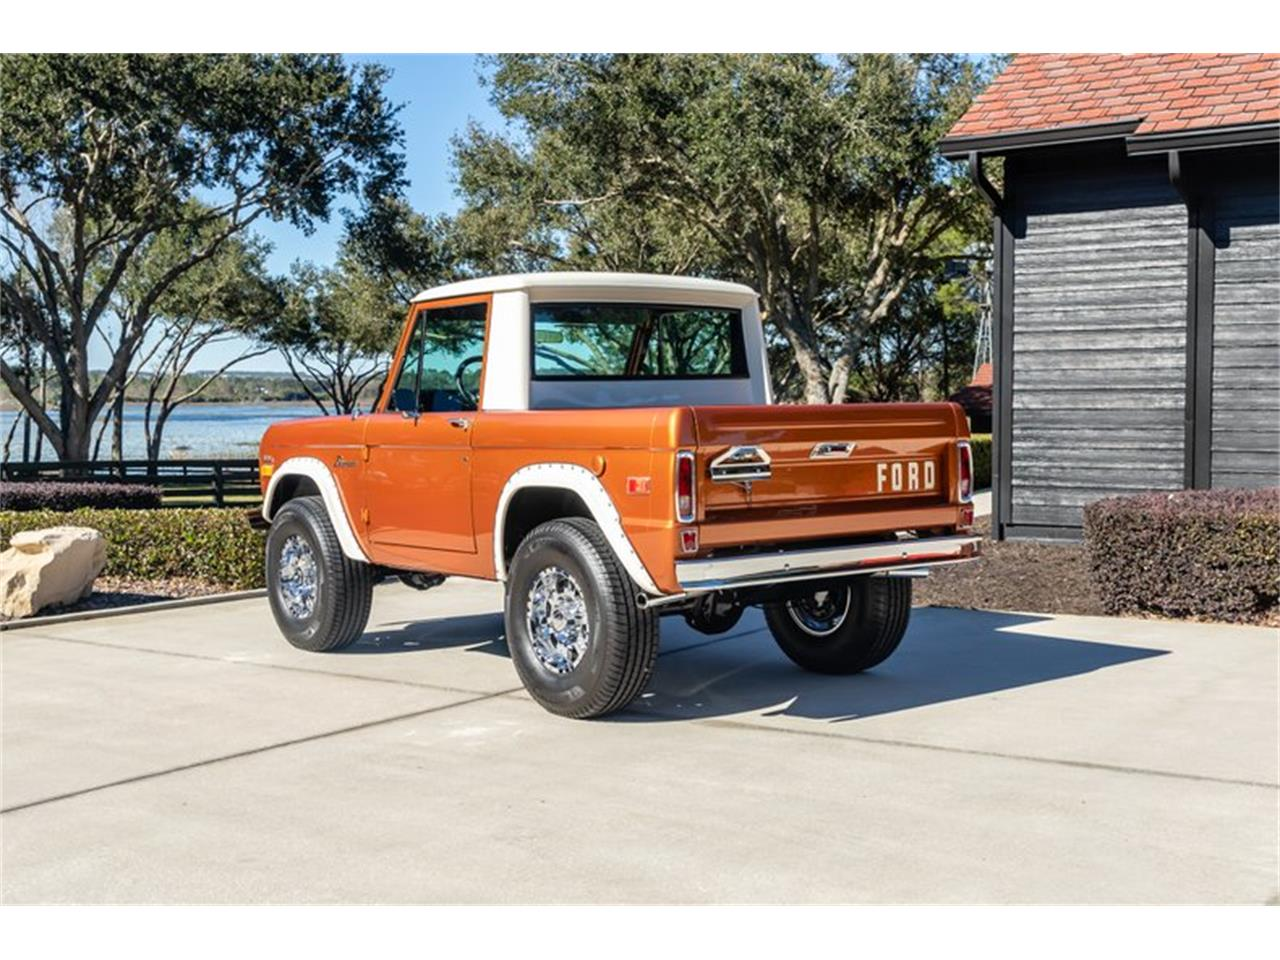 Large Picture of '76 Ford Bronco located in Greensboro North Carolina Auction Vehicle - Q8U3